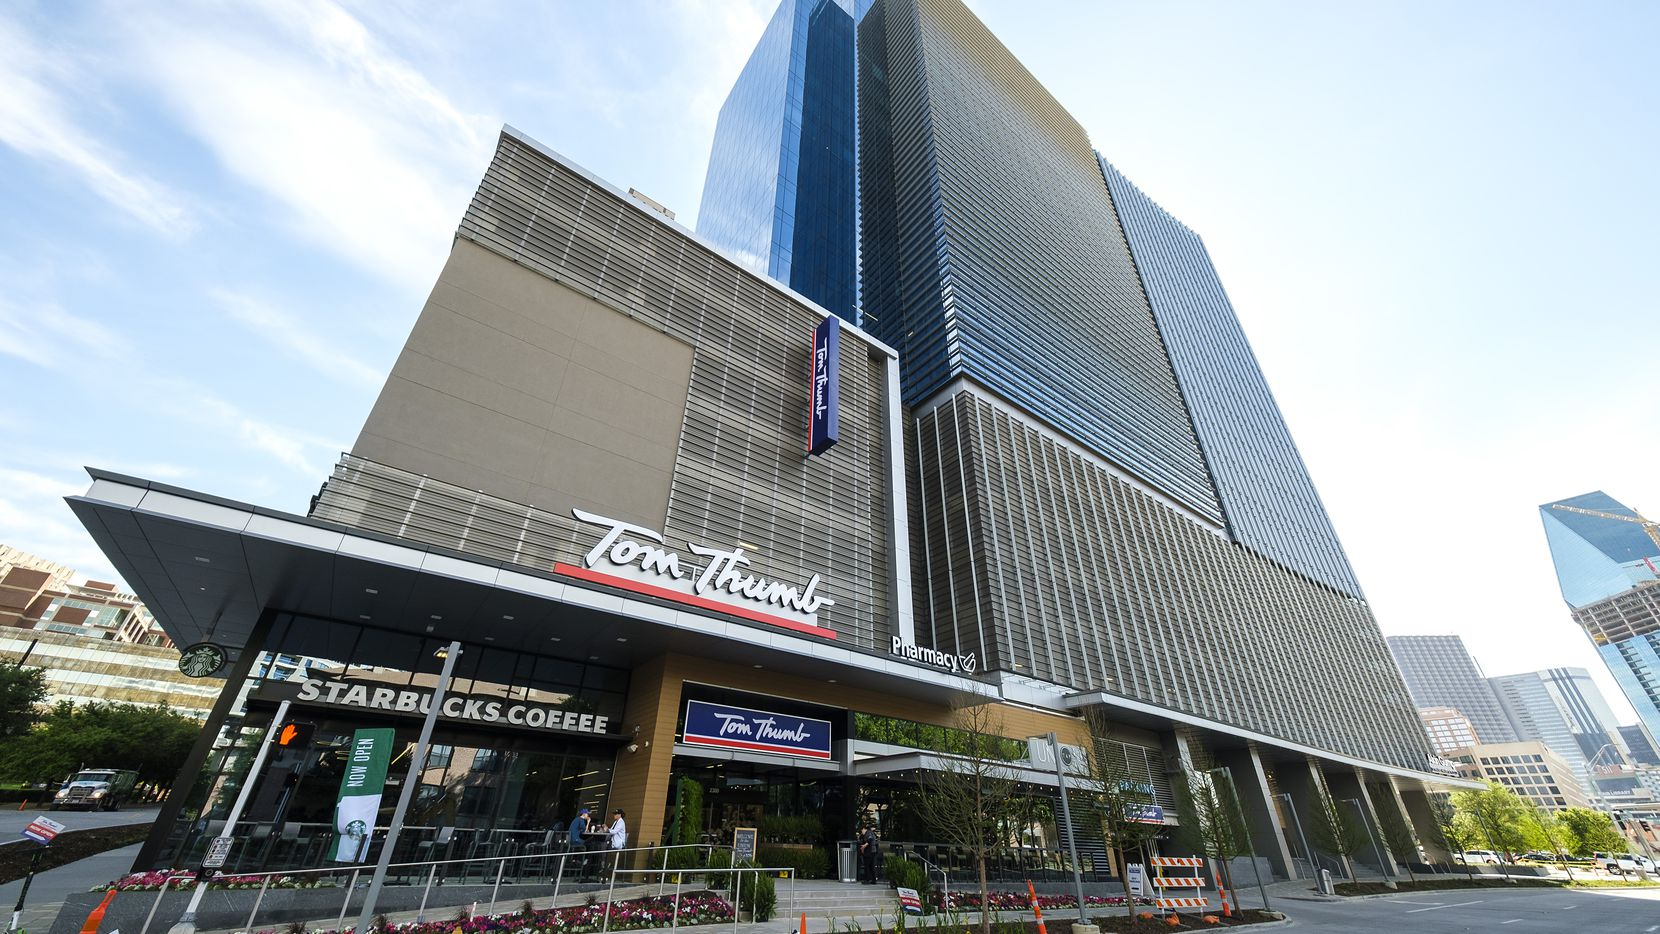 The Union in Dallas' Uptown district includes a Tom Thumb grocery store, restaurants and office space.